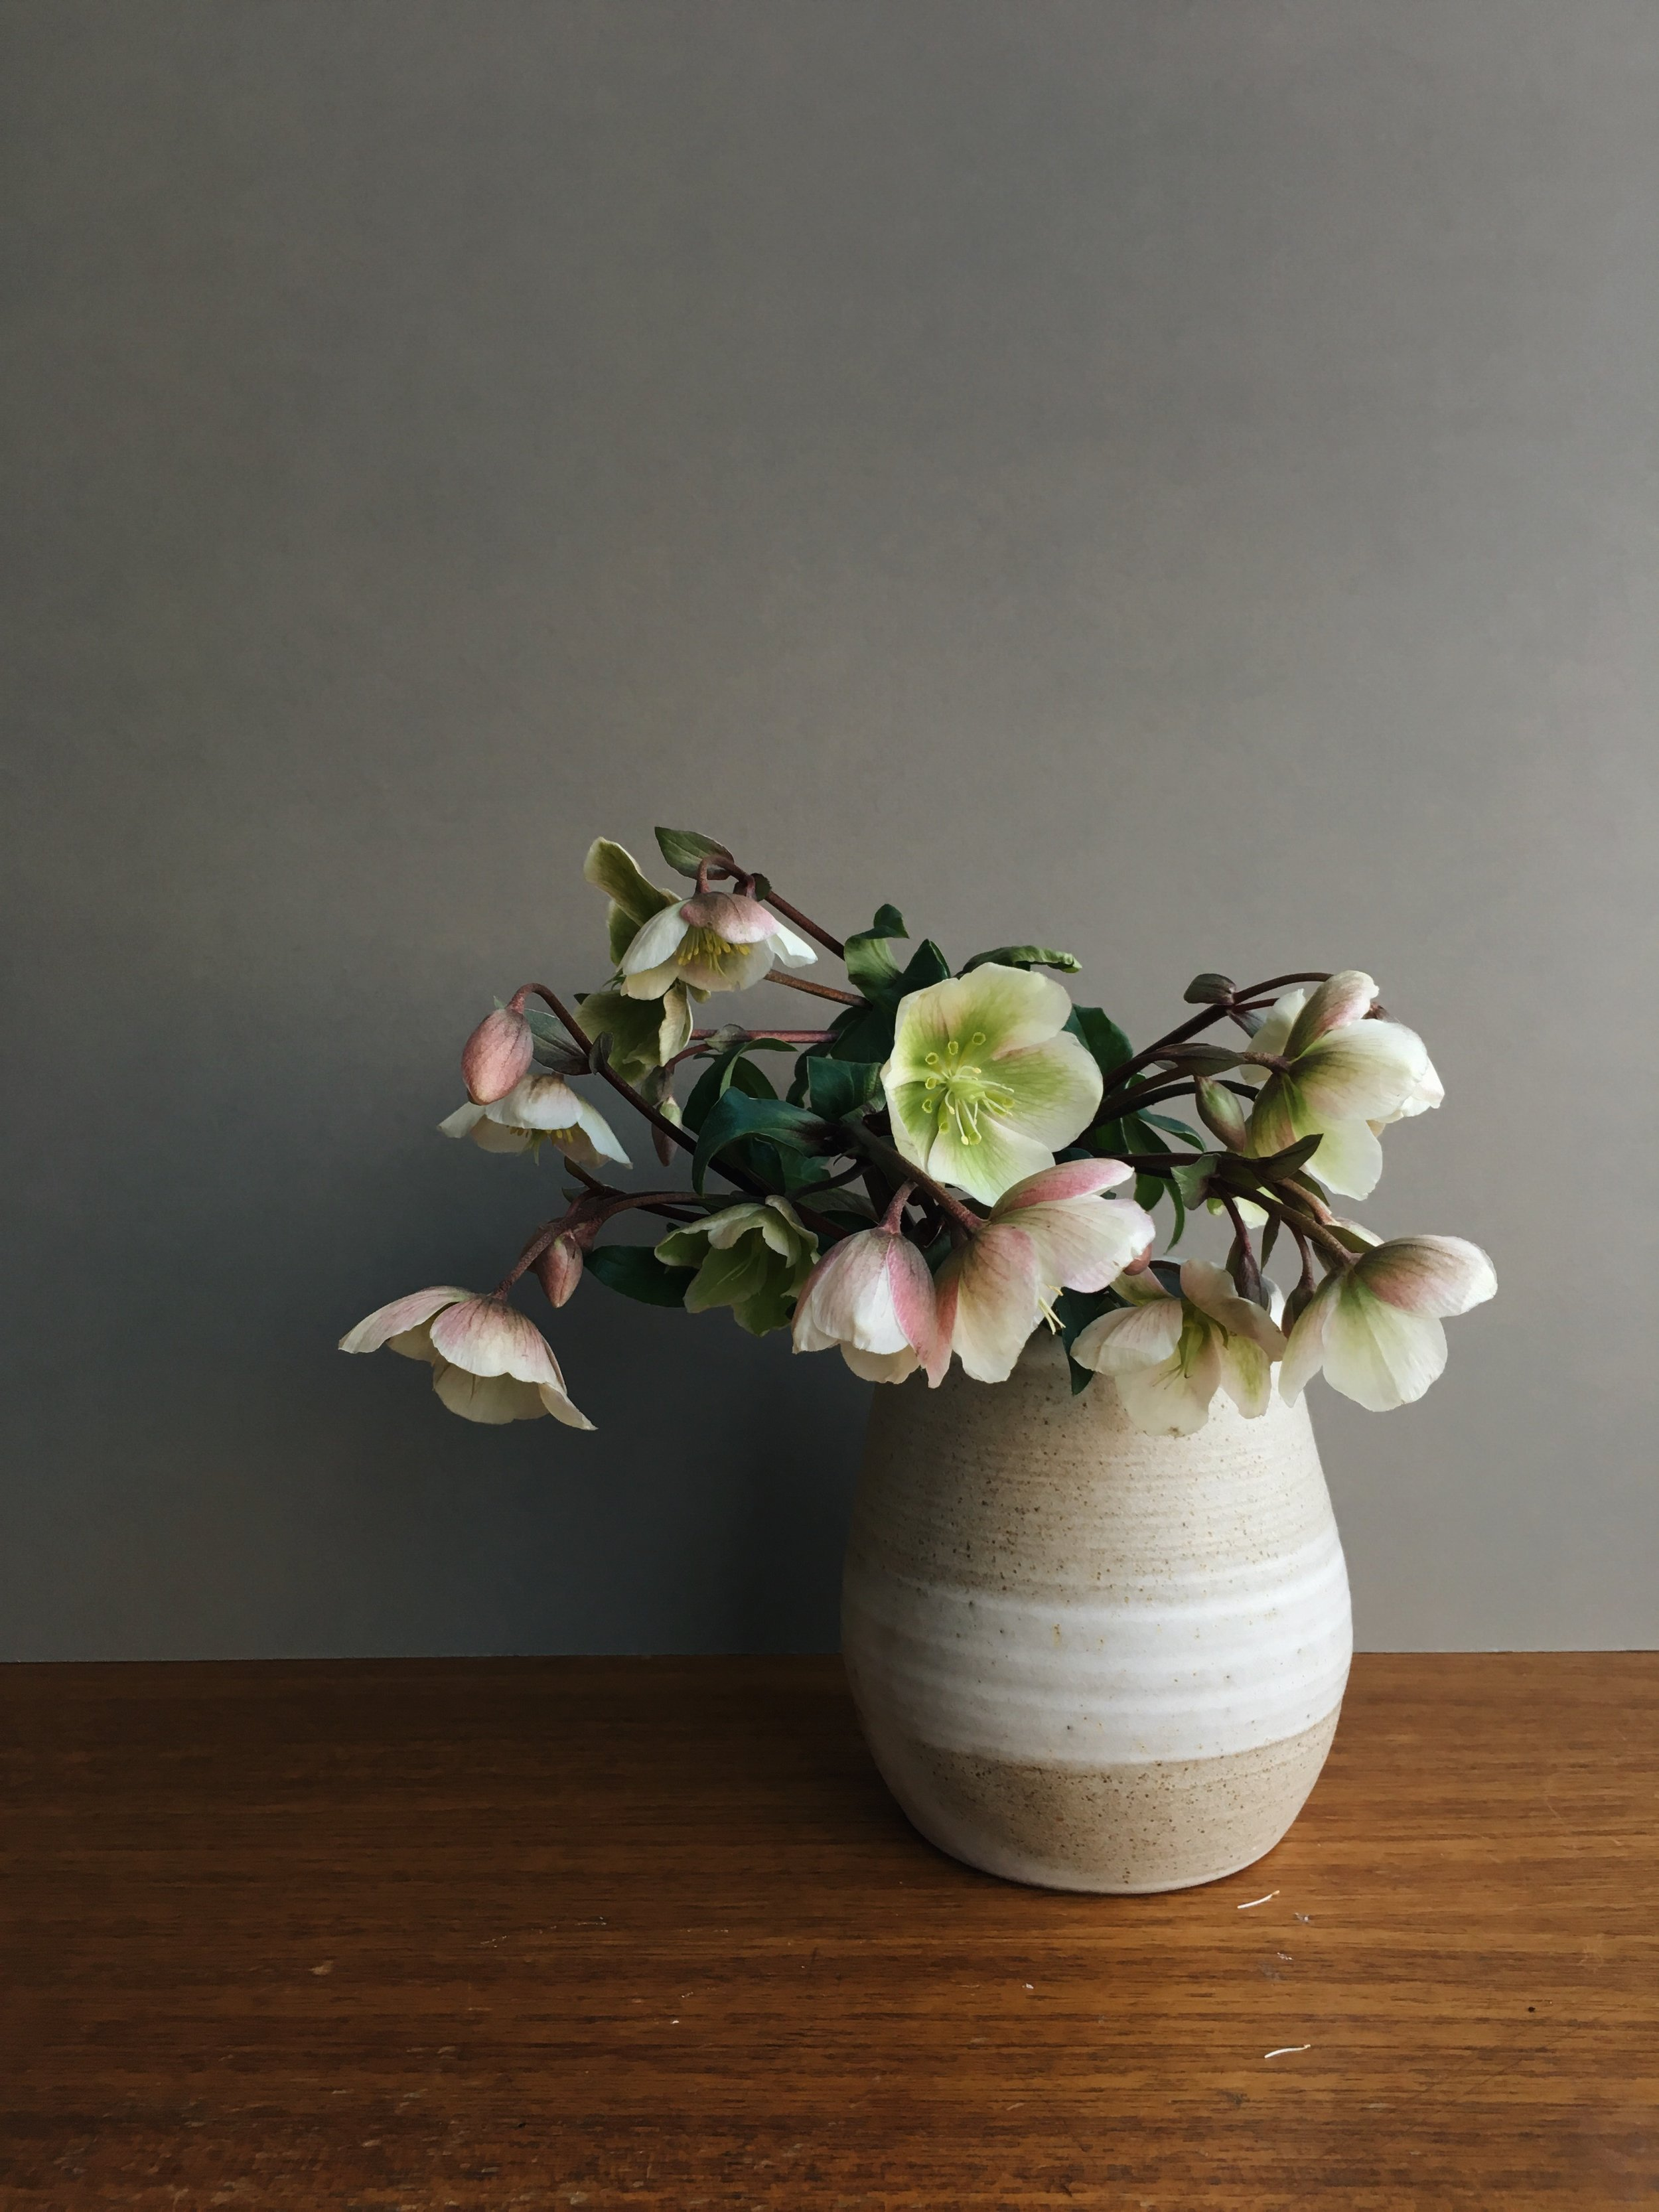 SINGLE STEMS - Hellebore 'magnificent bells' in Stone vase by Carla Murdoch.From £2.00 per stem